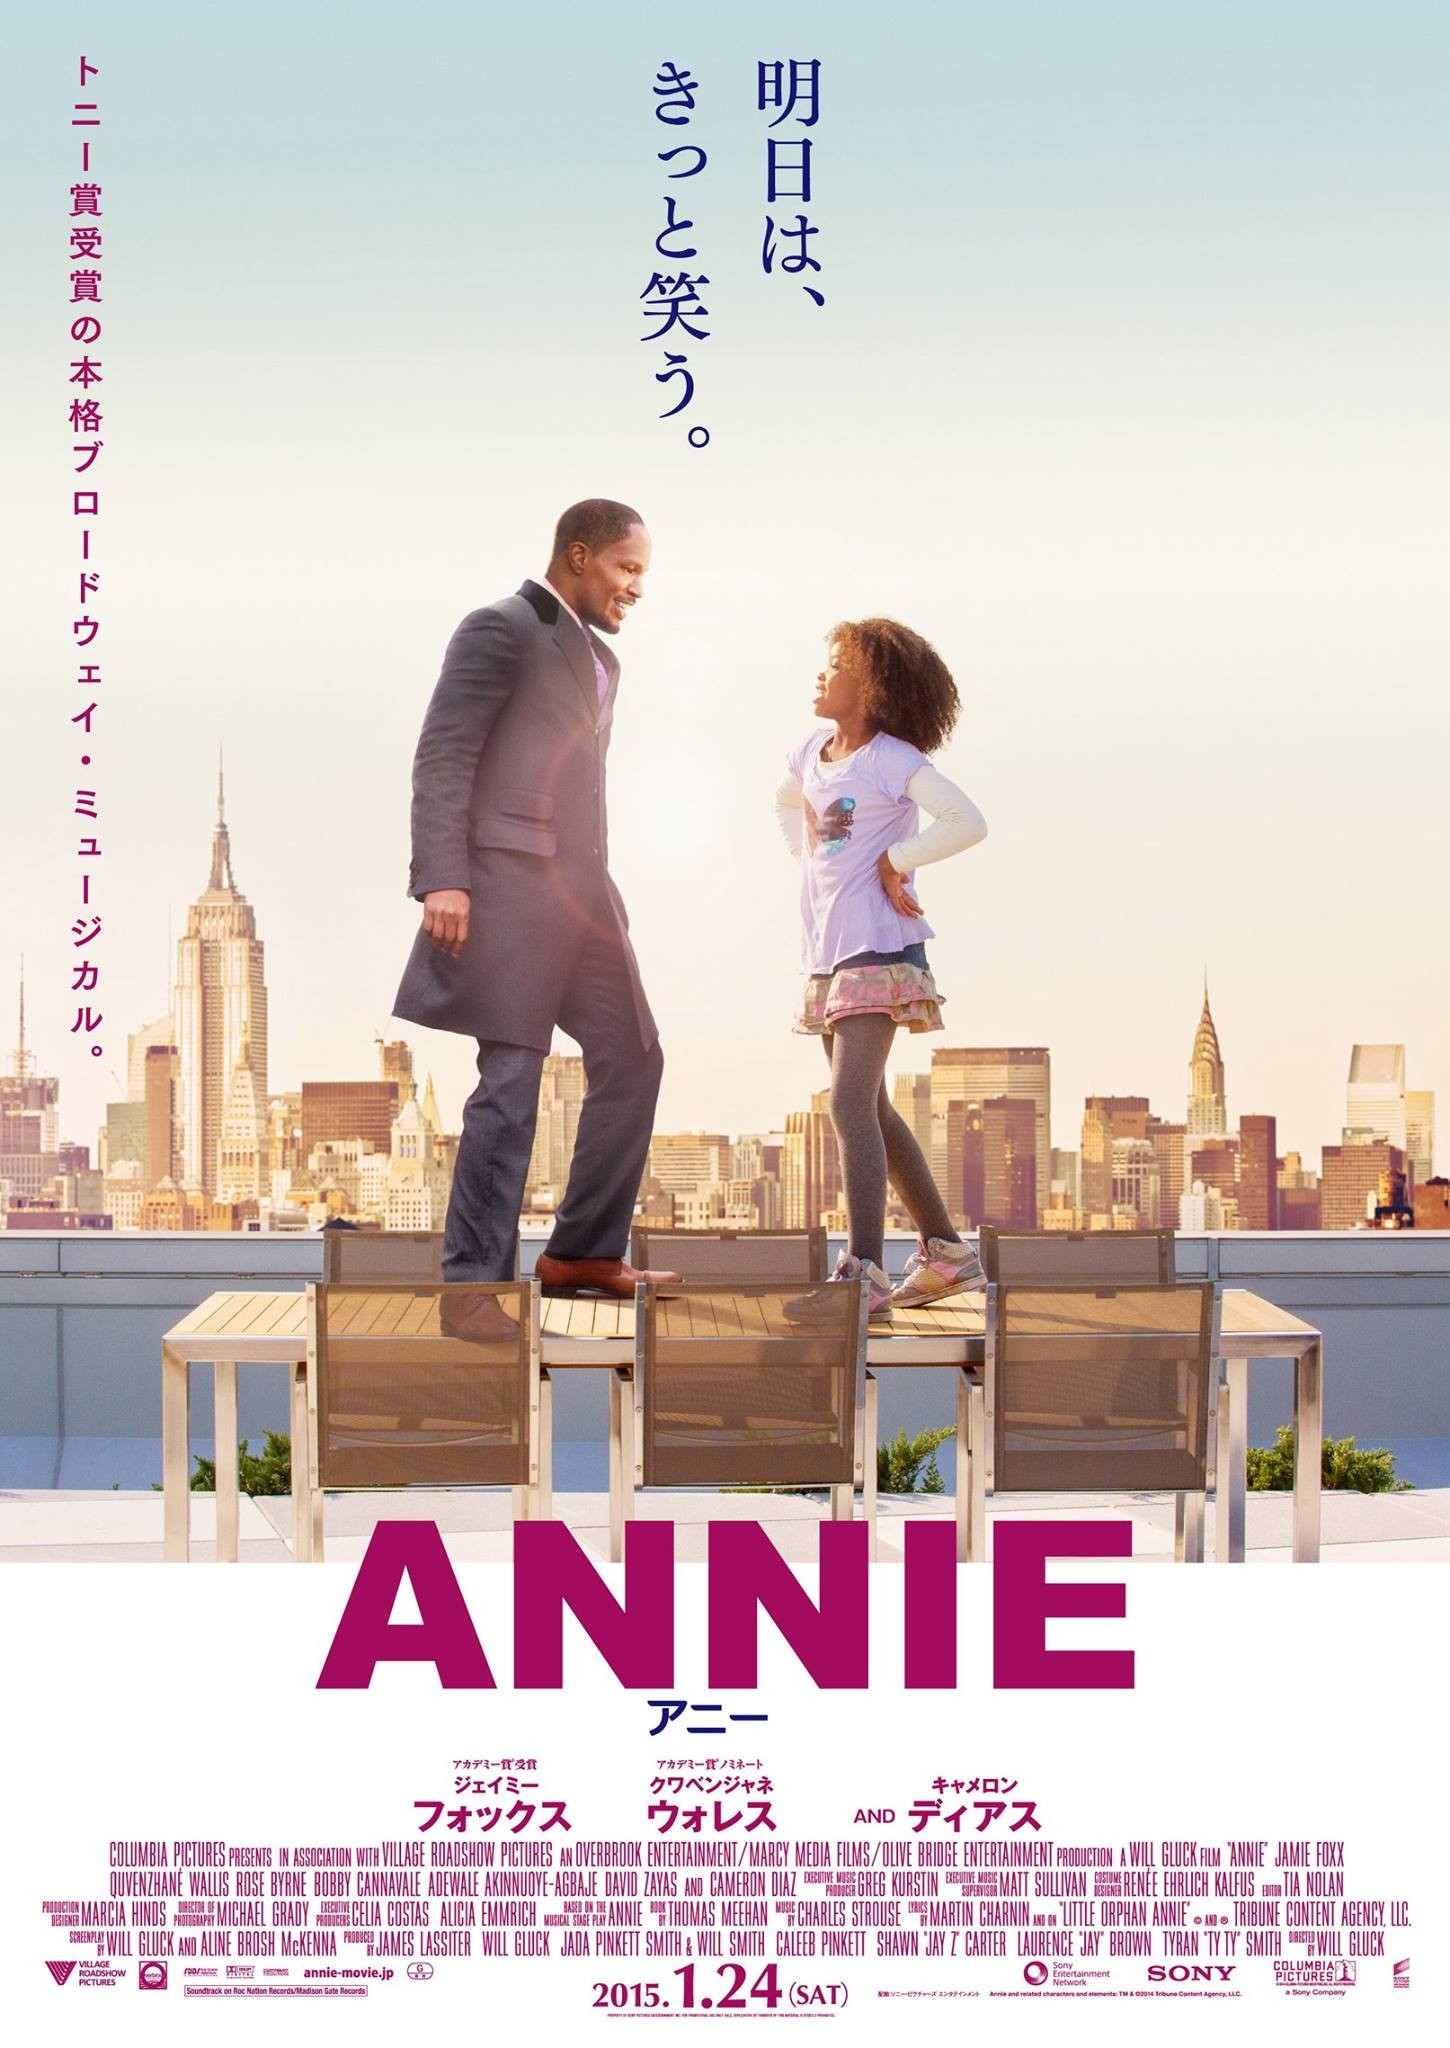 Annie-Official Poster Banner PROMO XLG-11SETEMBRO2014-03